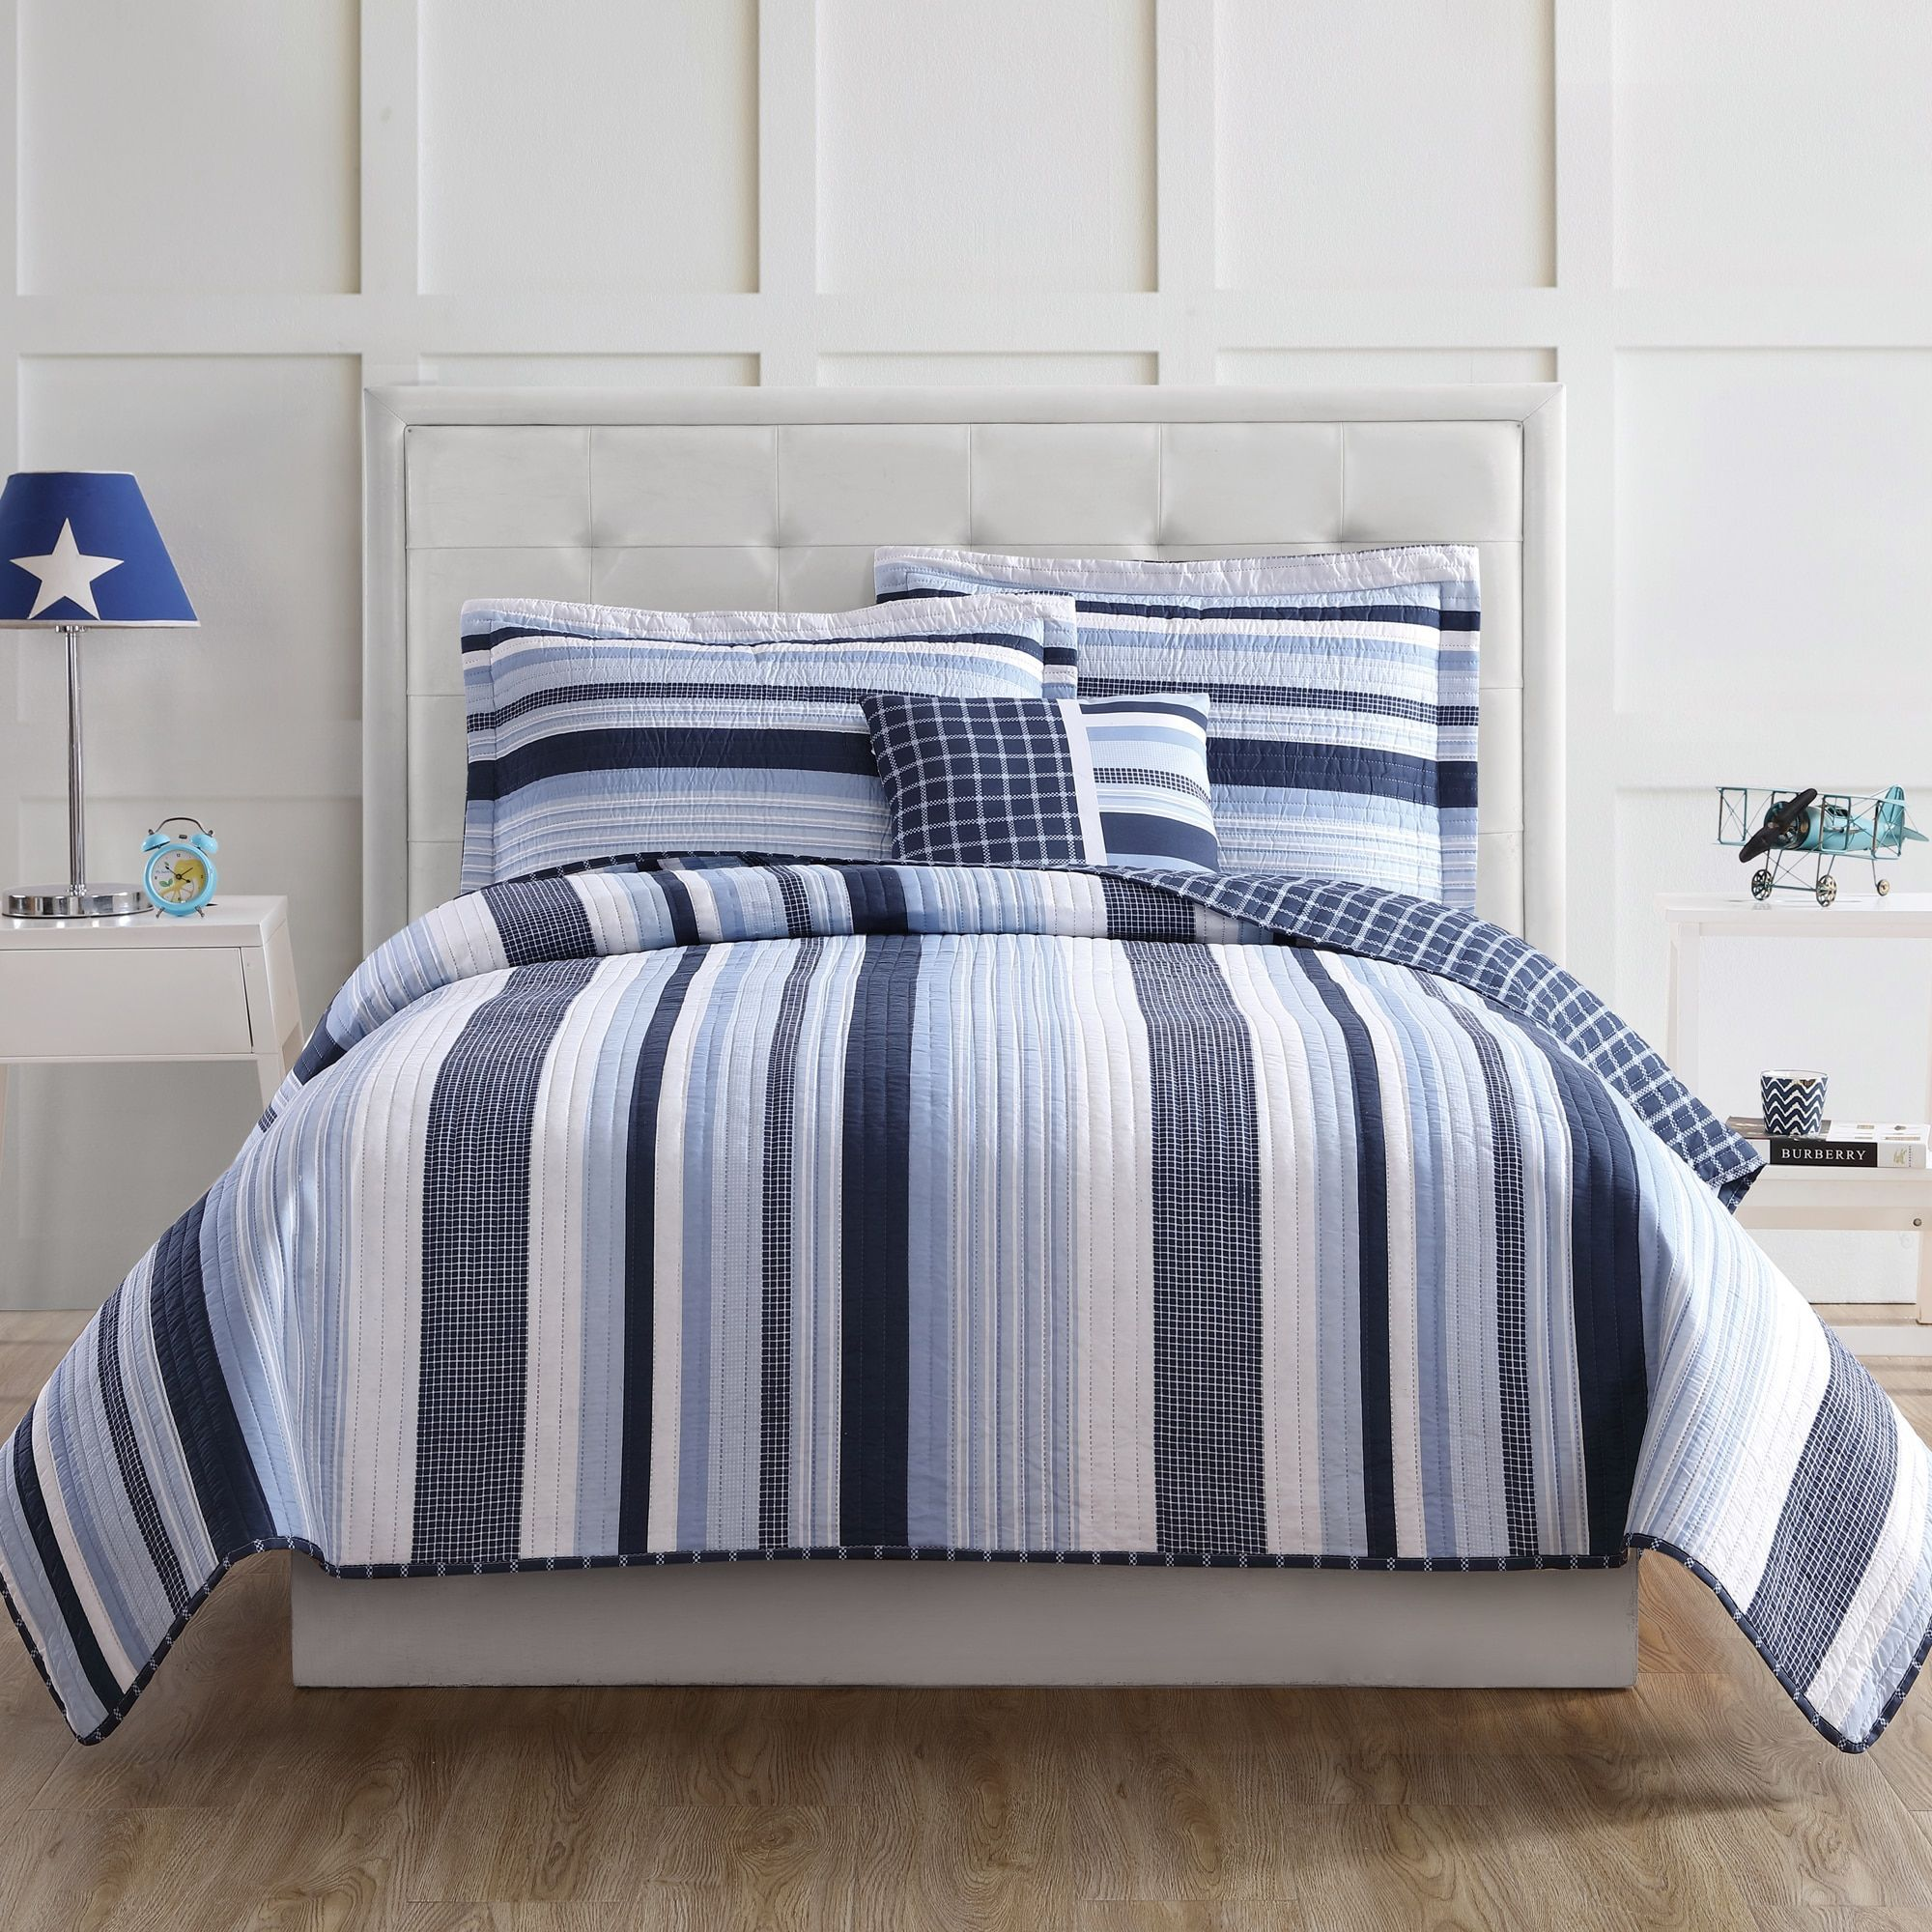 woodland quilt must new size coverlet set have blue rag covers bumper room sets sheets bedding cot sweet dreams nursery oration of white for and blankets pillow full resources grey baby quilts duvet pink dable cream boy gle img crib